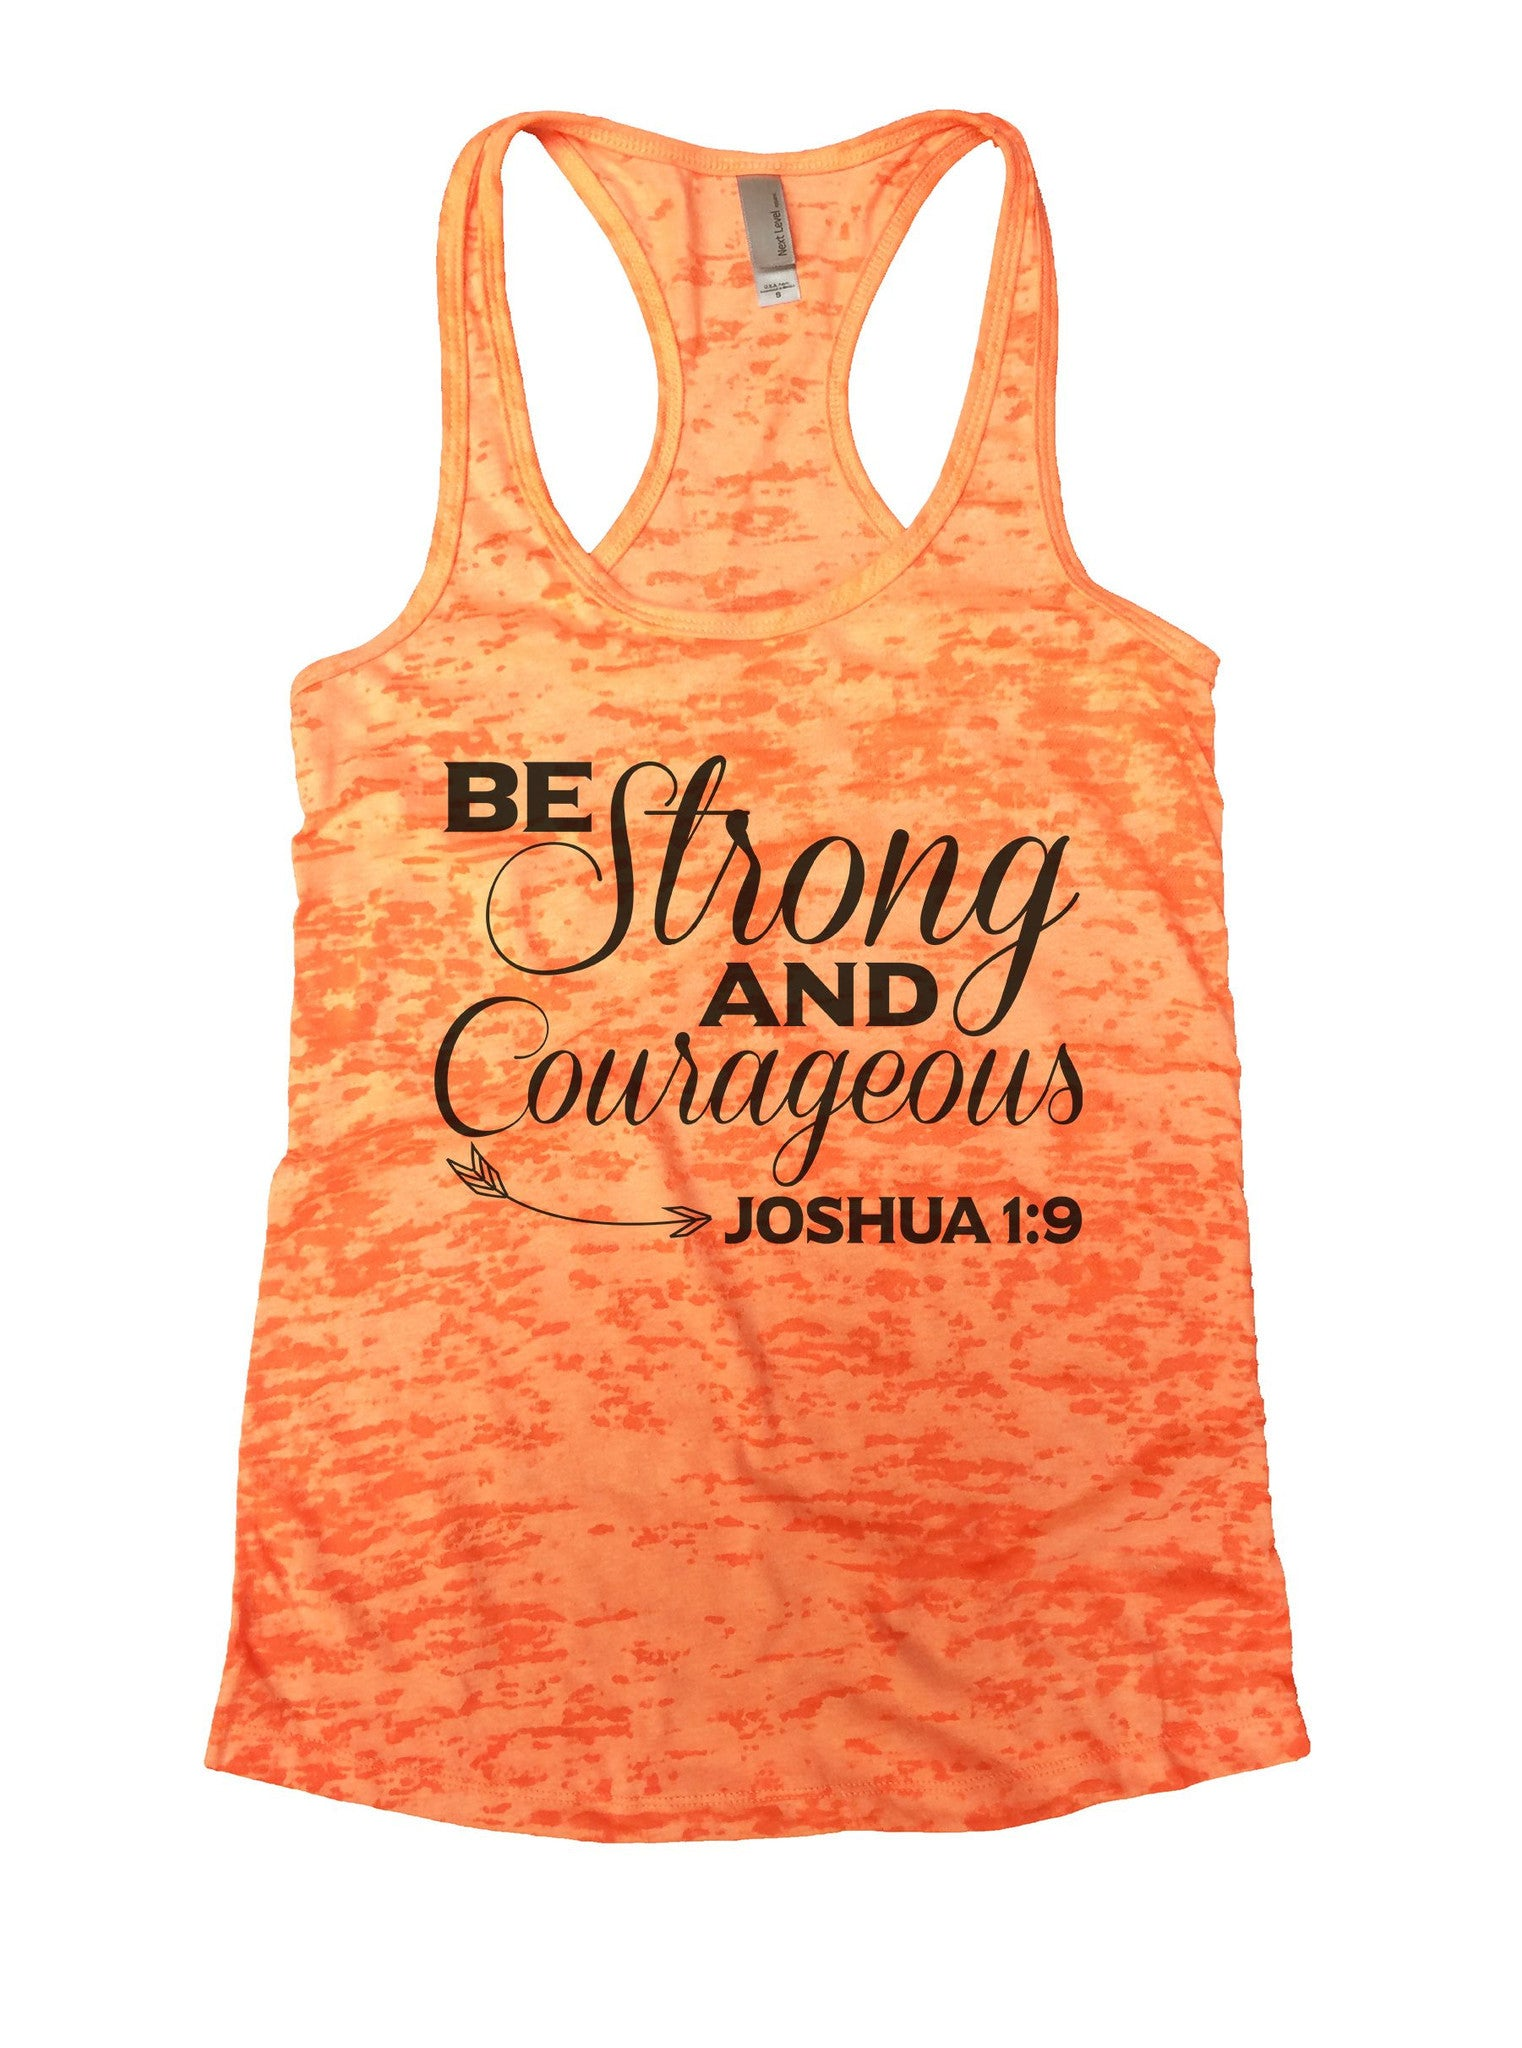 Be Strong And Courageous Joshua 1:9 Burnout Tank Top By BurnoutTankTops.com - 948 - Funny Shirts Tank Tops Burnouts and Triblends  - 3